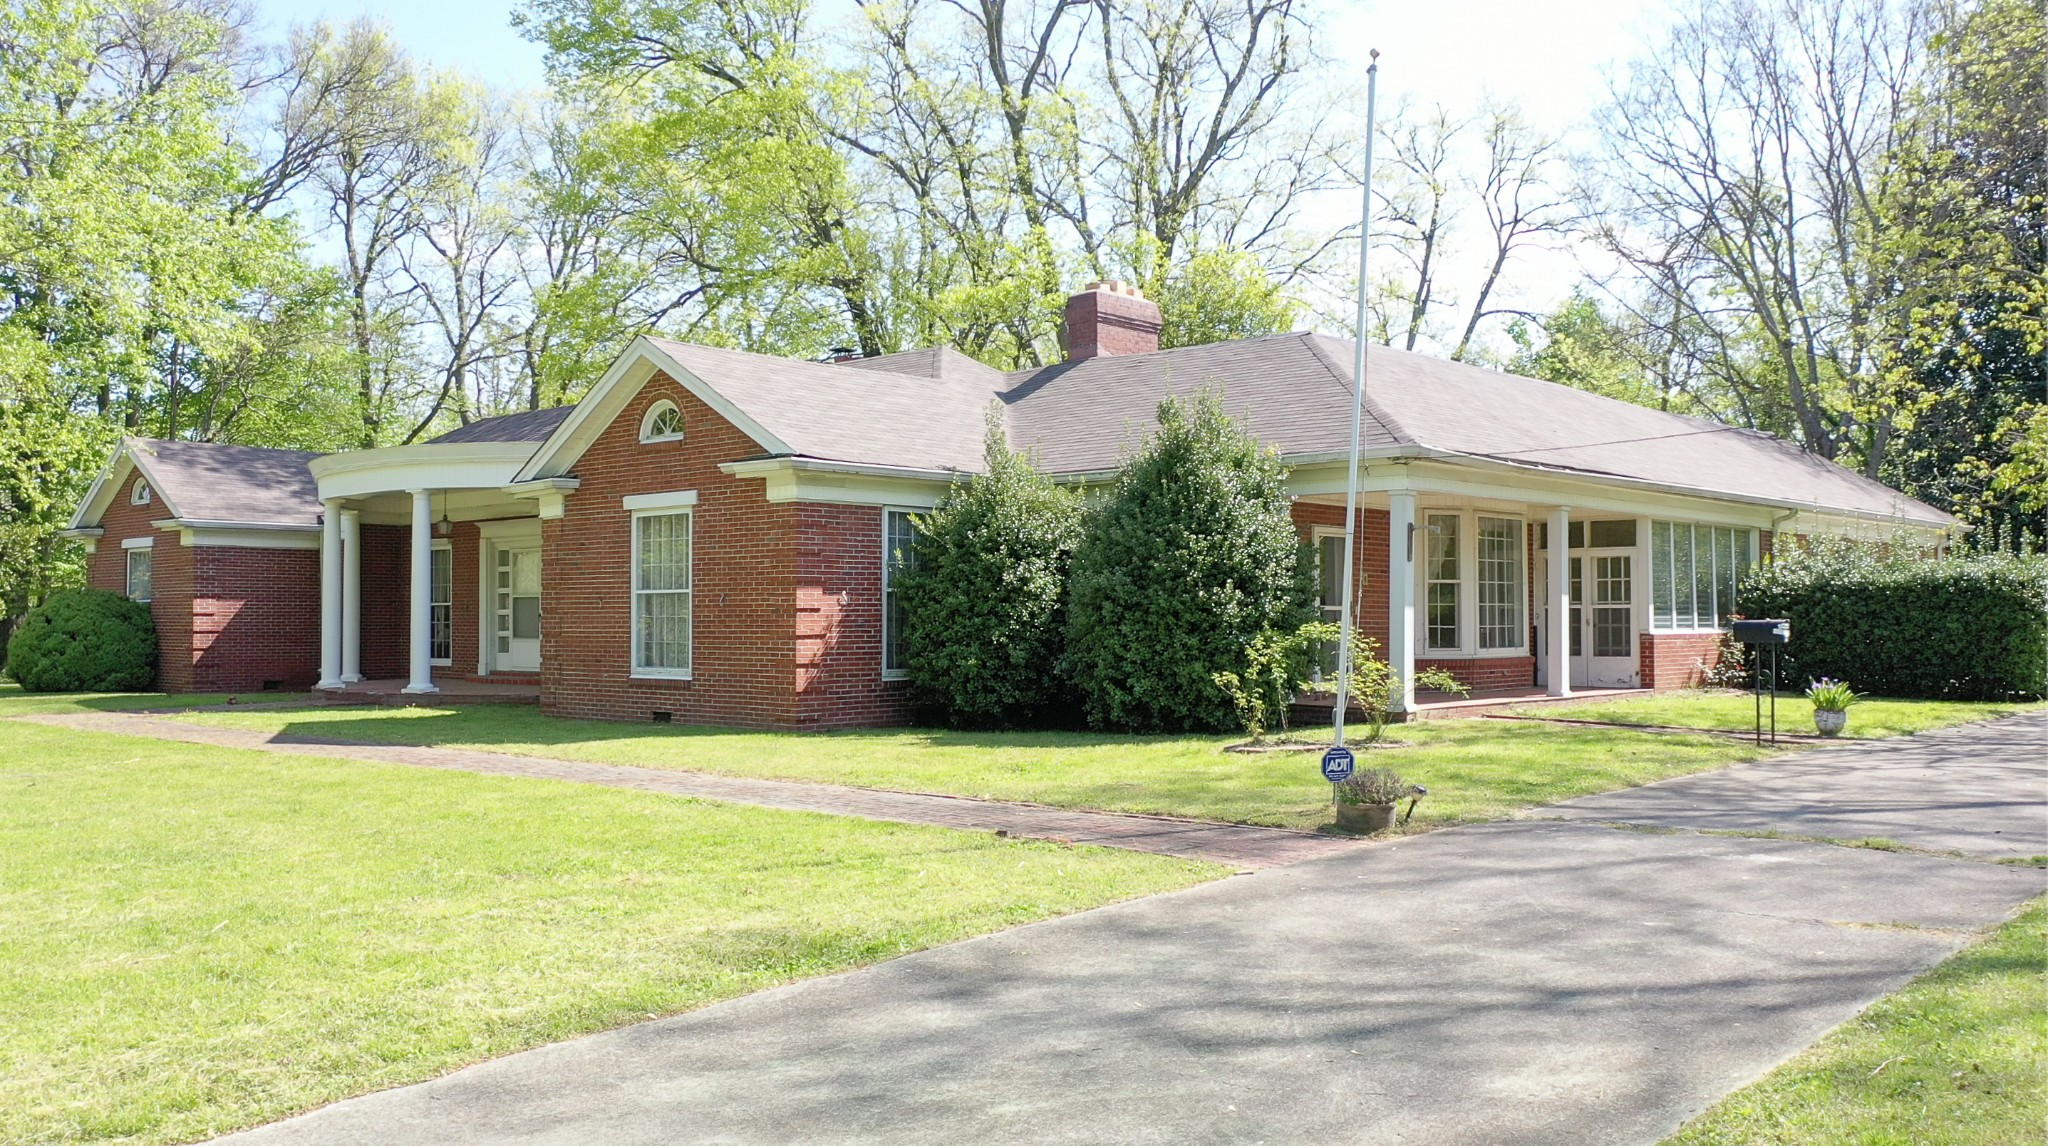 506 Bryant St Property Photo - Shelbyville, TN real estate listing